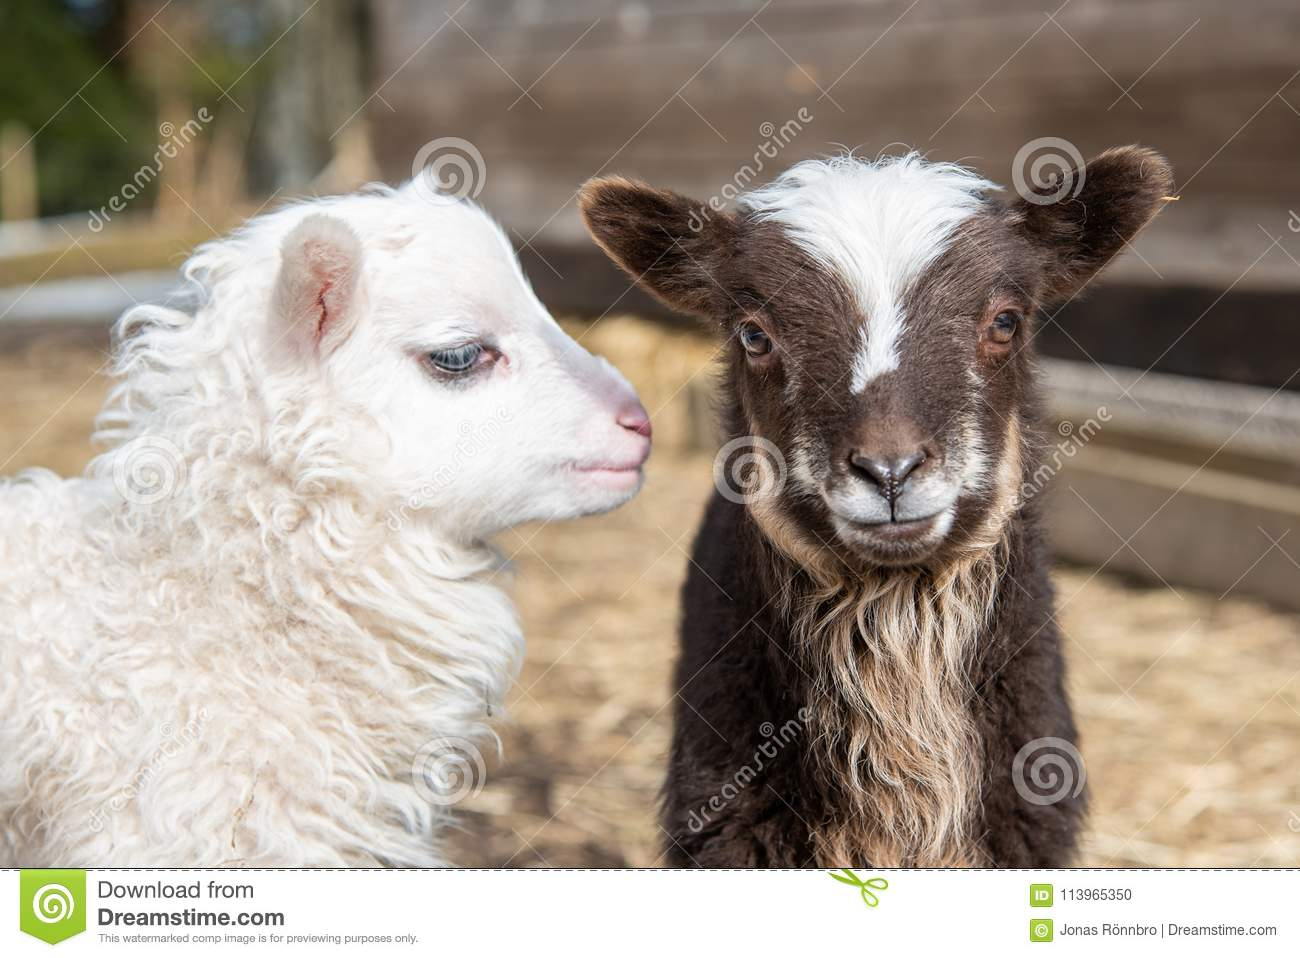 Two young and cute little lambs standing together